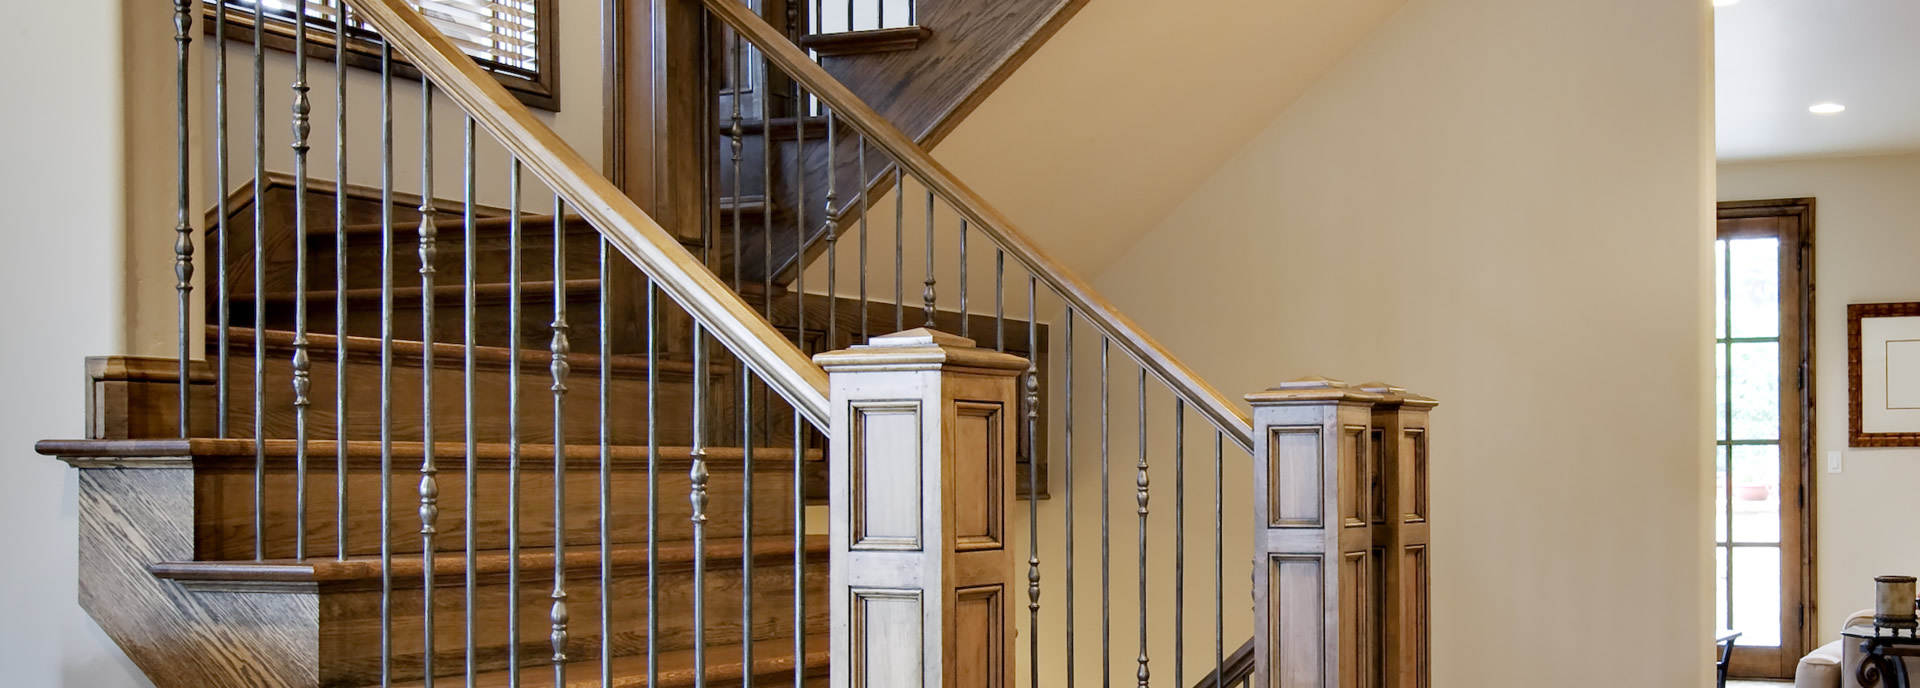 Railing Remodel Services Frequently Asked Questions Alpharetta, GA